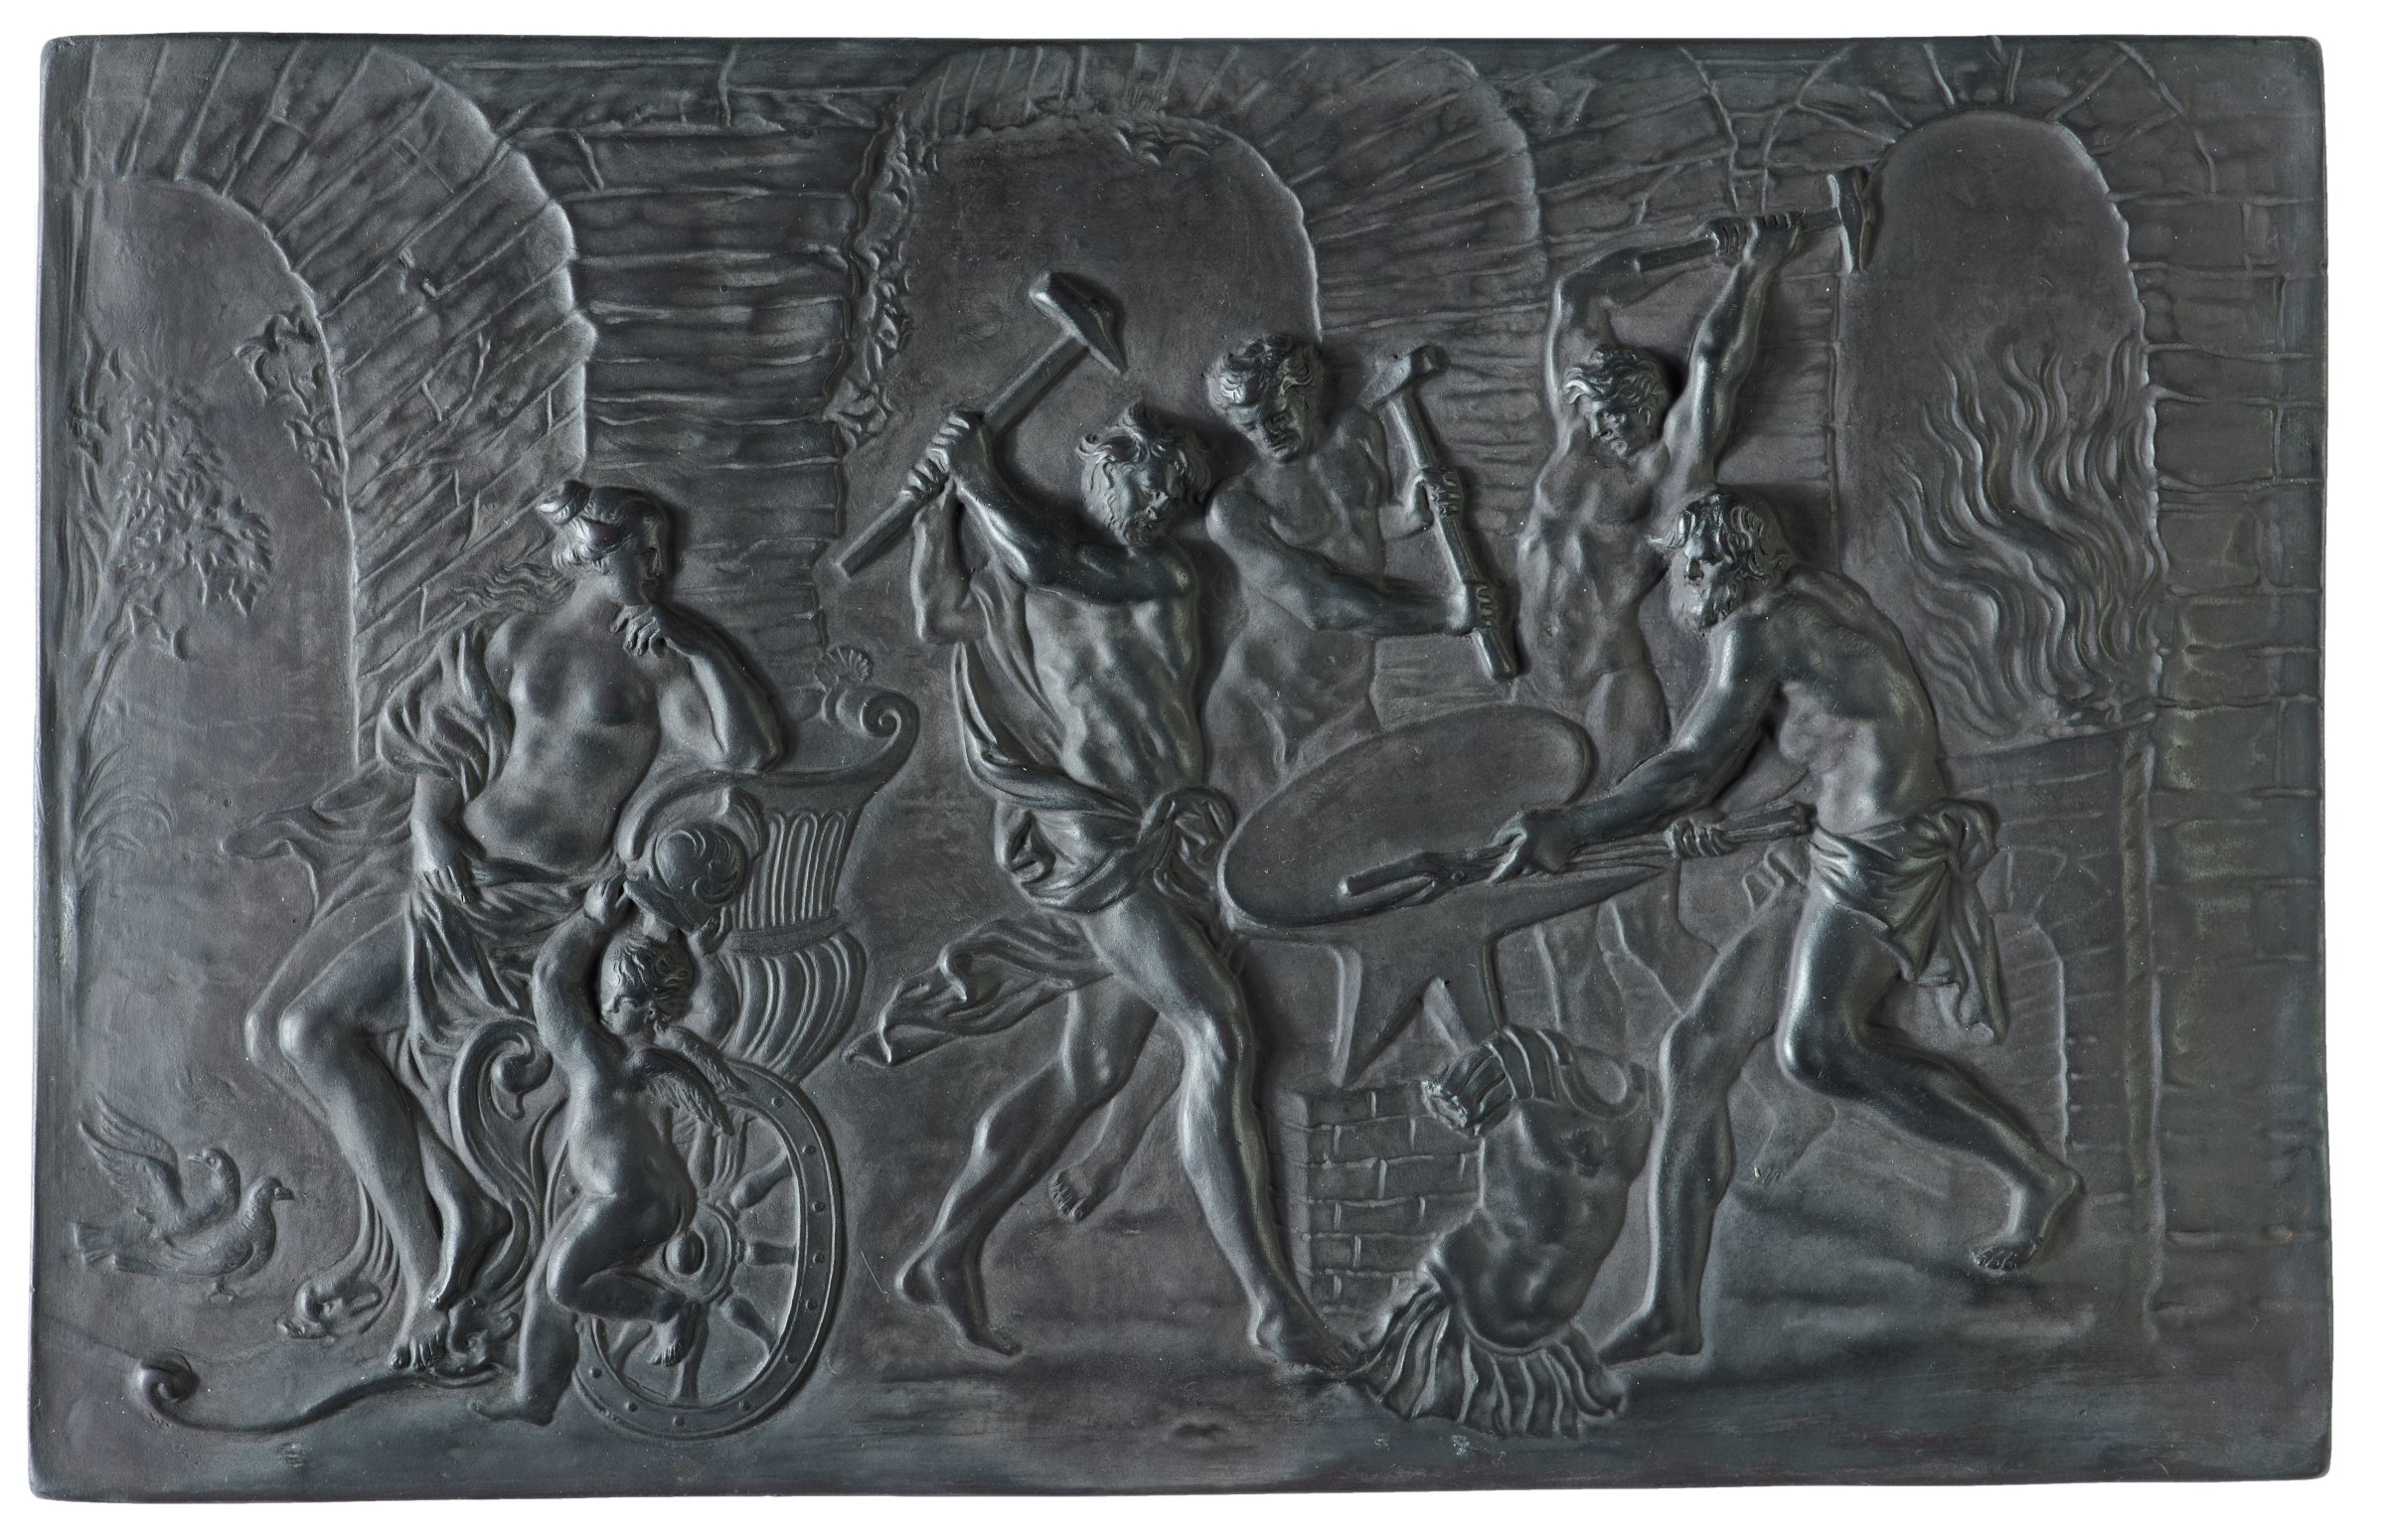 Small, slightly irregular rectangular tablet with the bas relief image of Vulcan forging the armor for Achilles, in the center stands Vulcan swinging his hammer while another holds a shield on the anvil, in the background are two other figures swinging their hammers, at Vulcan's feet lies part of a suit of armor and on the left sits Venus in Achilles's chariot, classically draped, her body turned toward Vulcan and her left hand brought to her chin, at her feet stands a small, winged Cupid holding Achilles's helmet aloft in his two hands, in the background is the fiery forge on the right and a landscape visible through the brick arches in the center and left; the surface has a slight bronze patina.